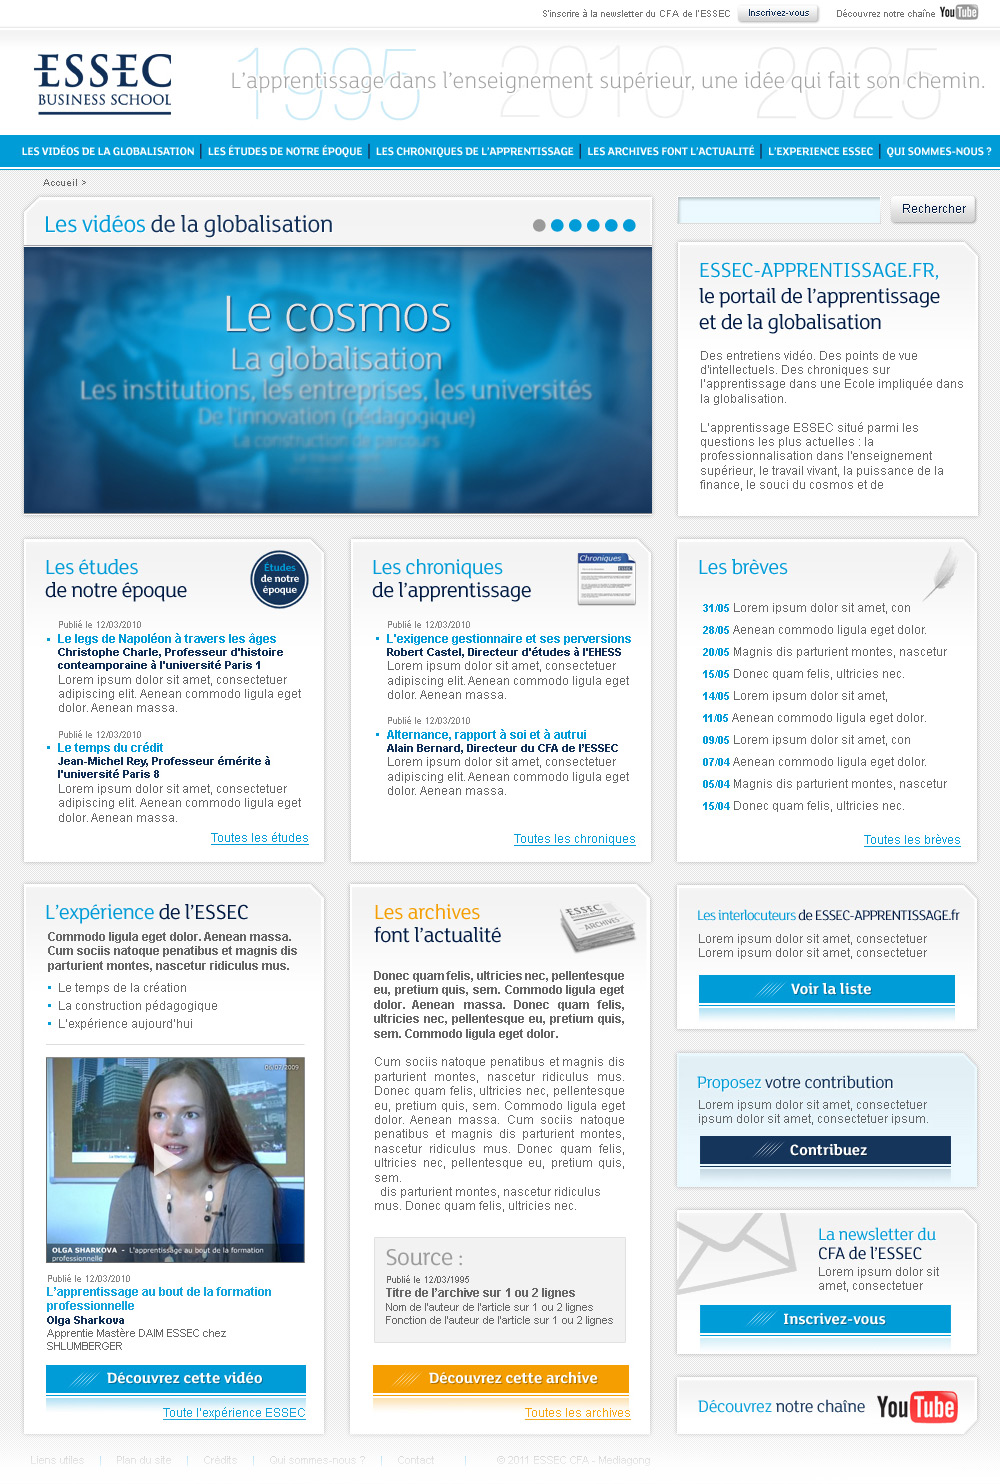 ESSEC Business School | Website CFA Apprentissage - Home Page